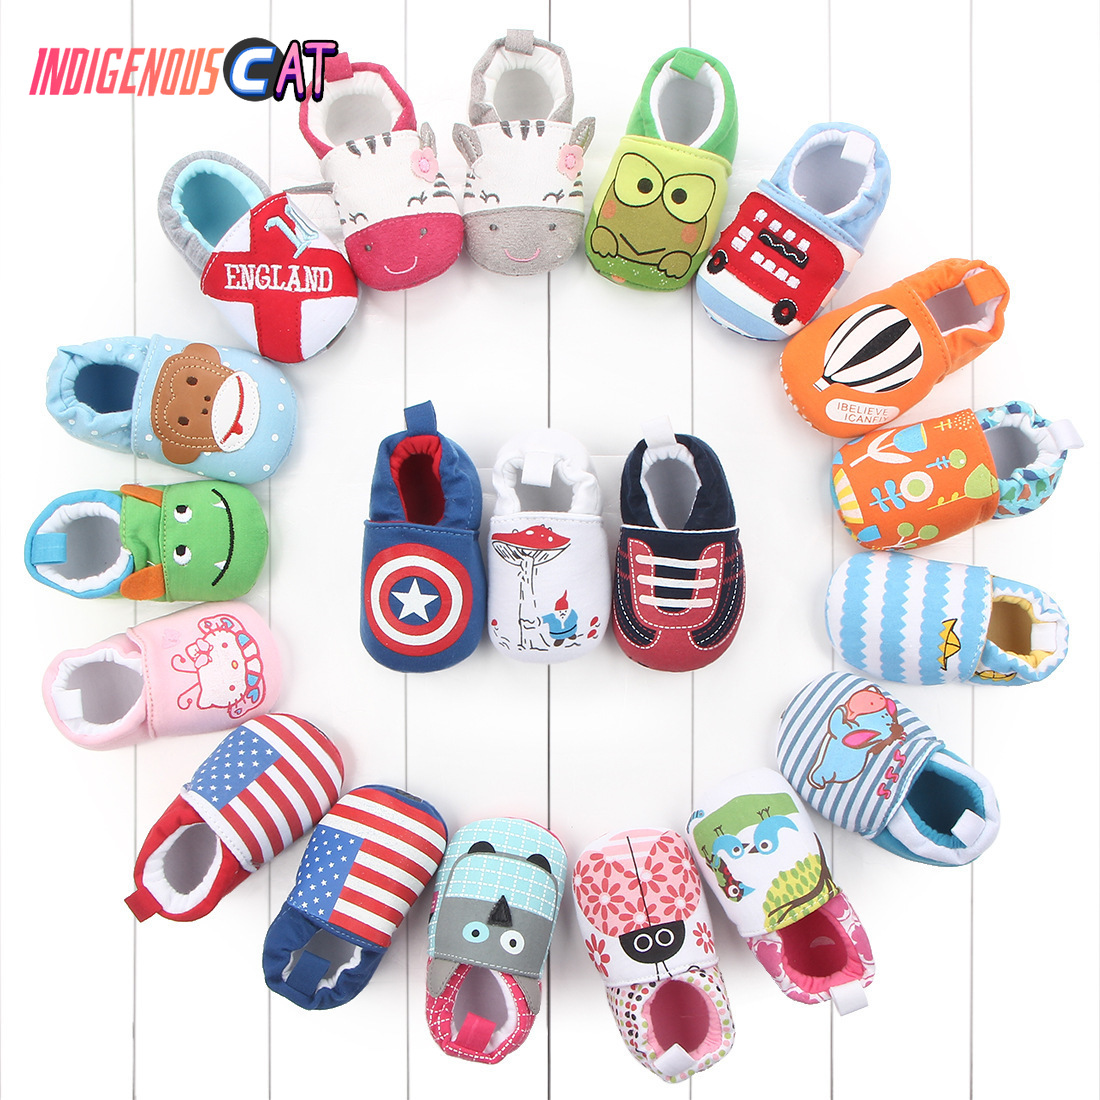 Newborn Skid-Proof Baby Shoes Soft Genuine Leather Baby Boys Girls Infant Shoes Slippers 0-6 6-12 12-18 18-24 First Walkers